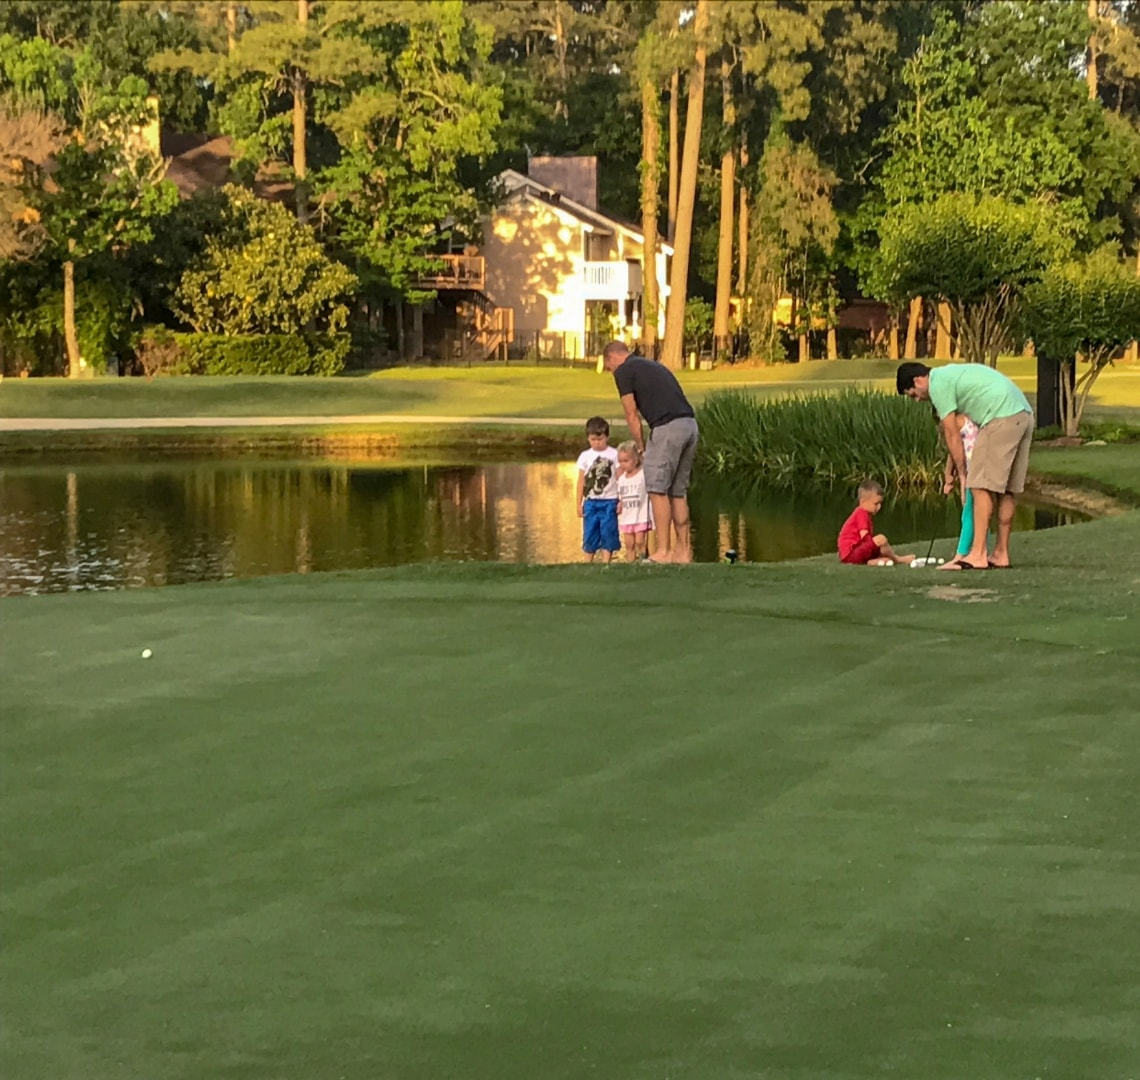 Houston -The Things with Mr Wanderlust and his friend on the putting green